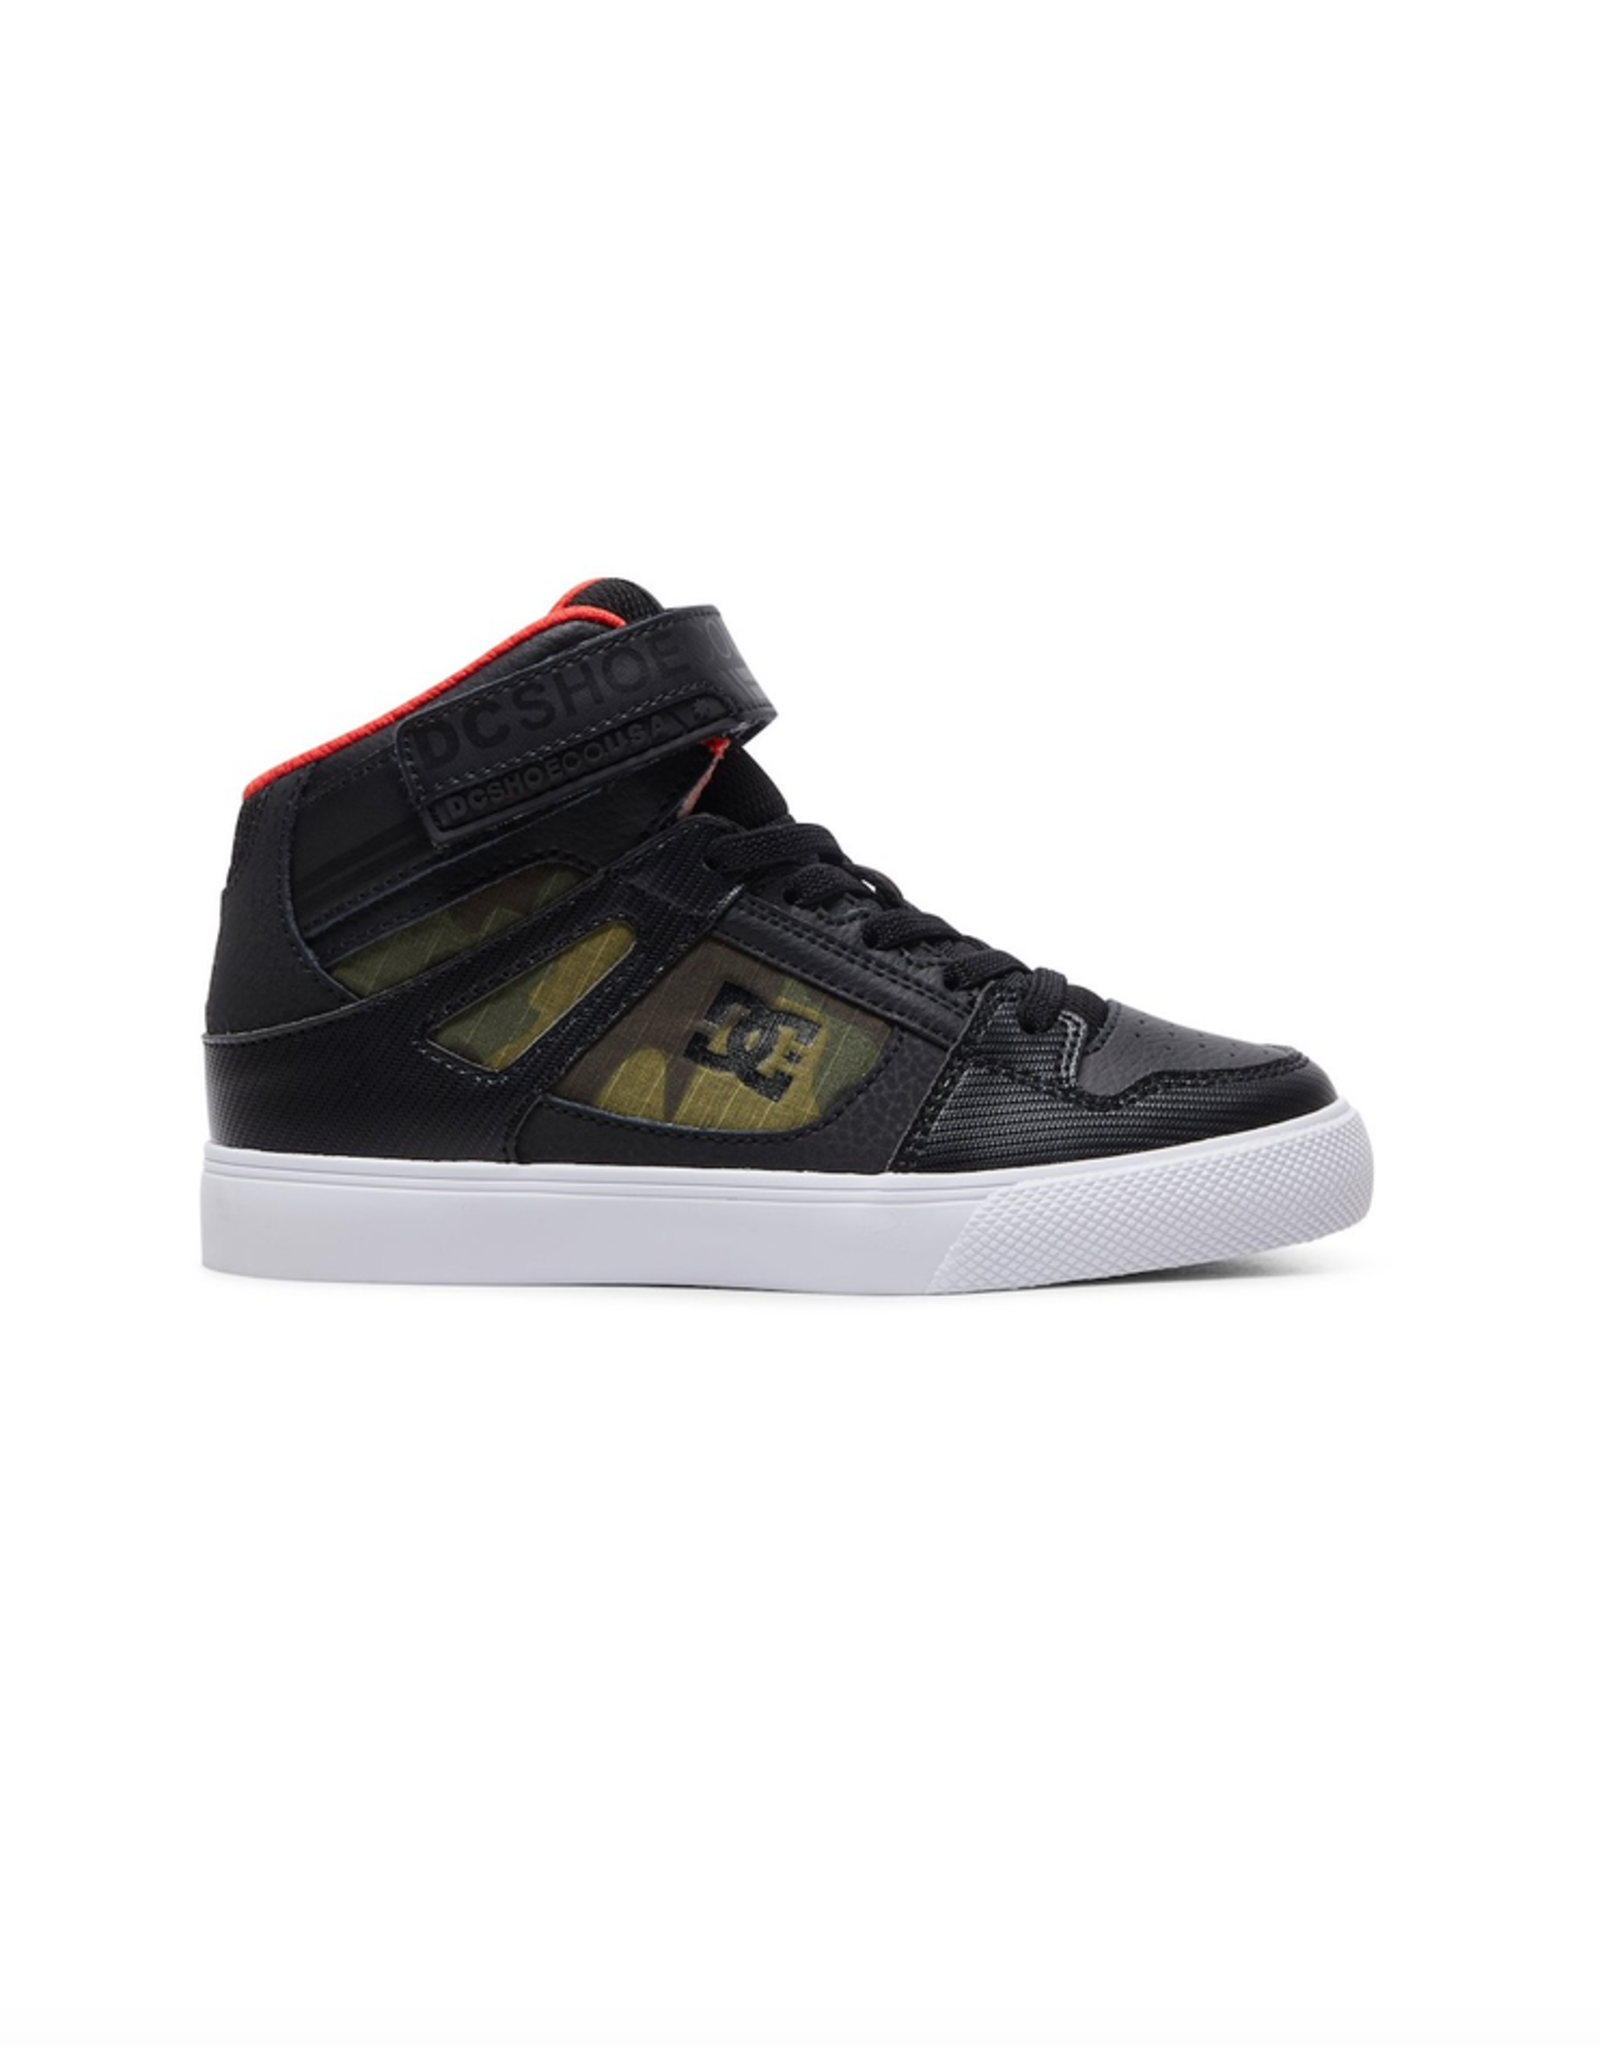 DC Shoes Kid's Pure Hi SE - High-Top Shoes in Camo